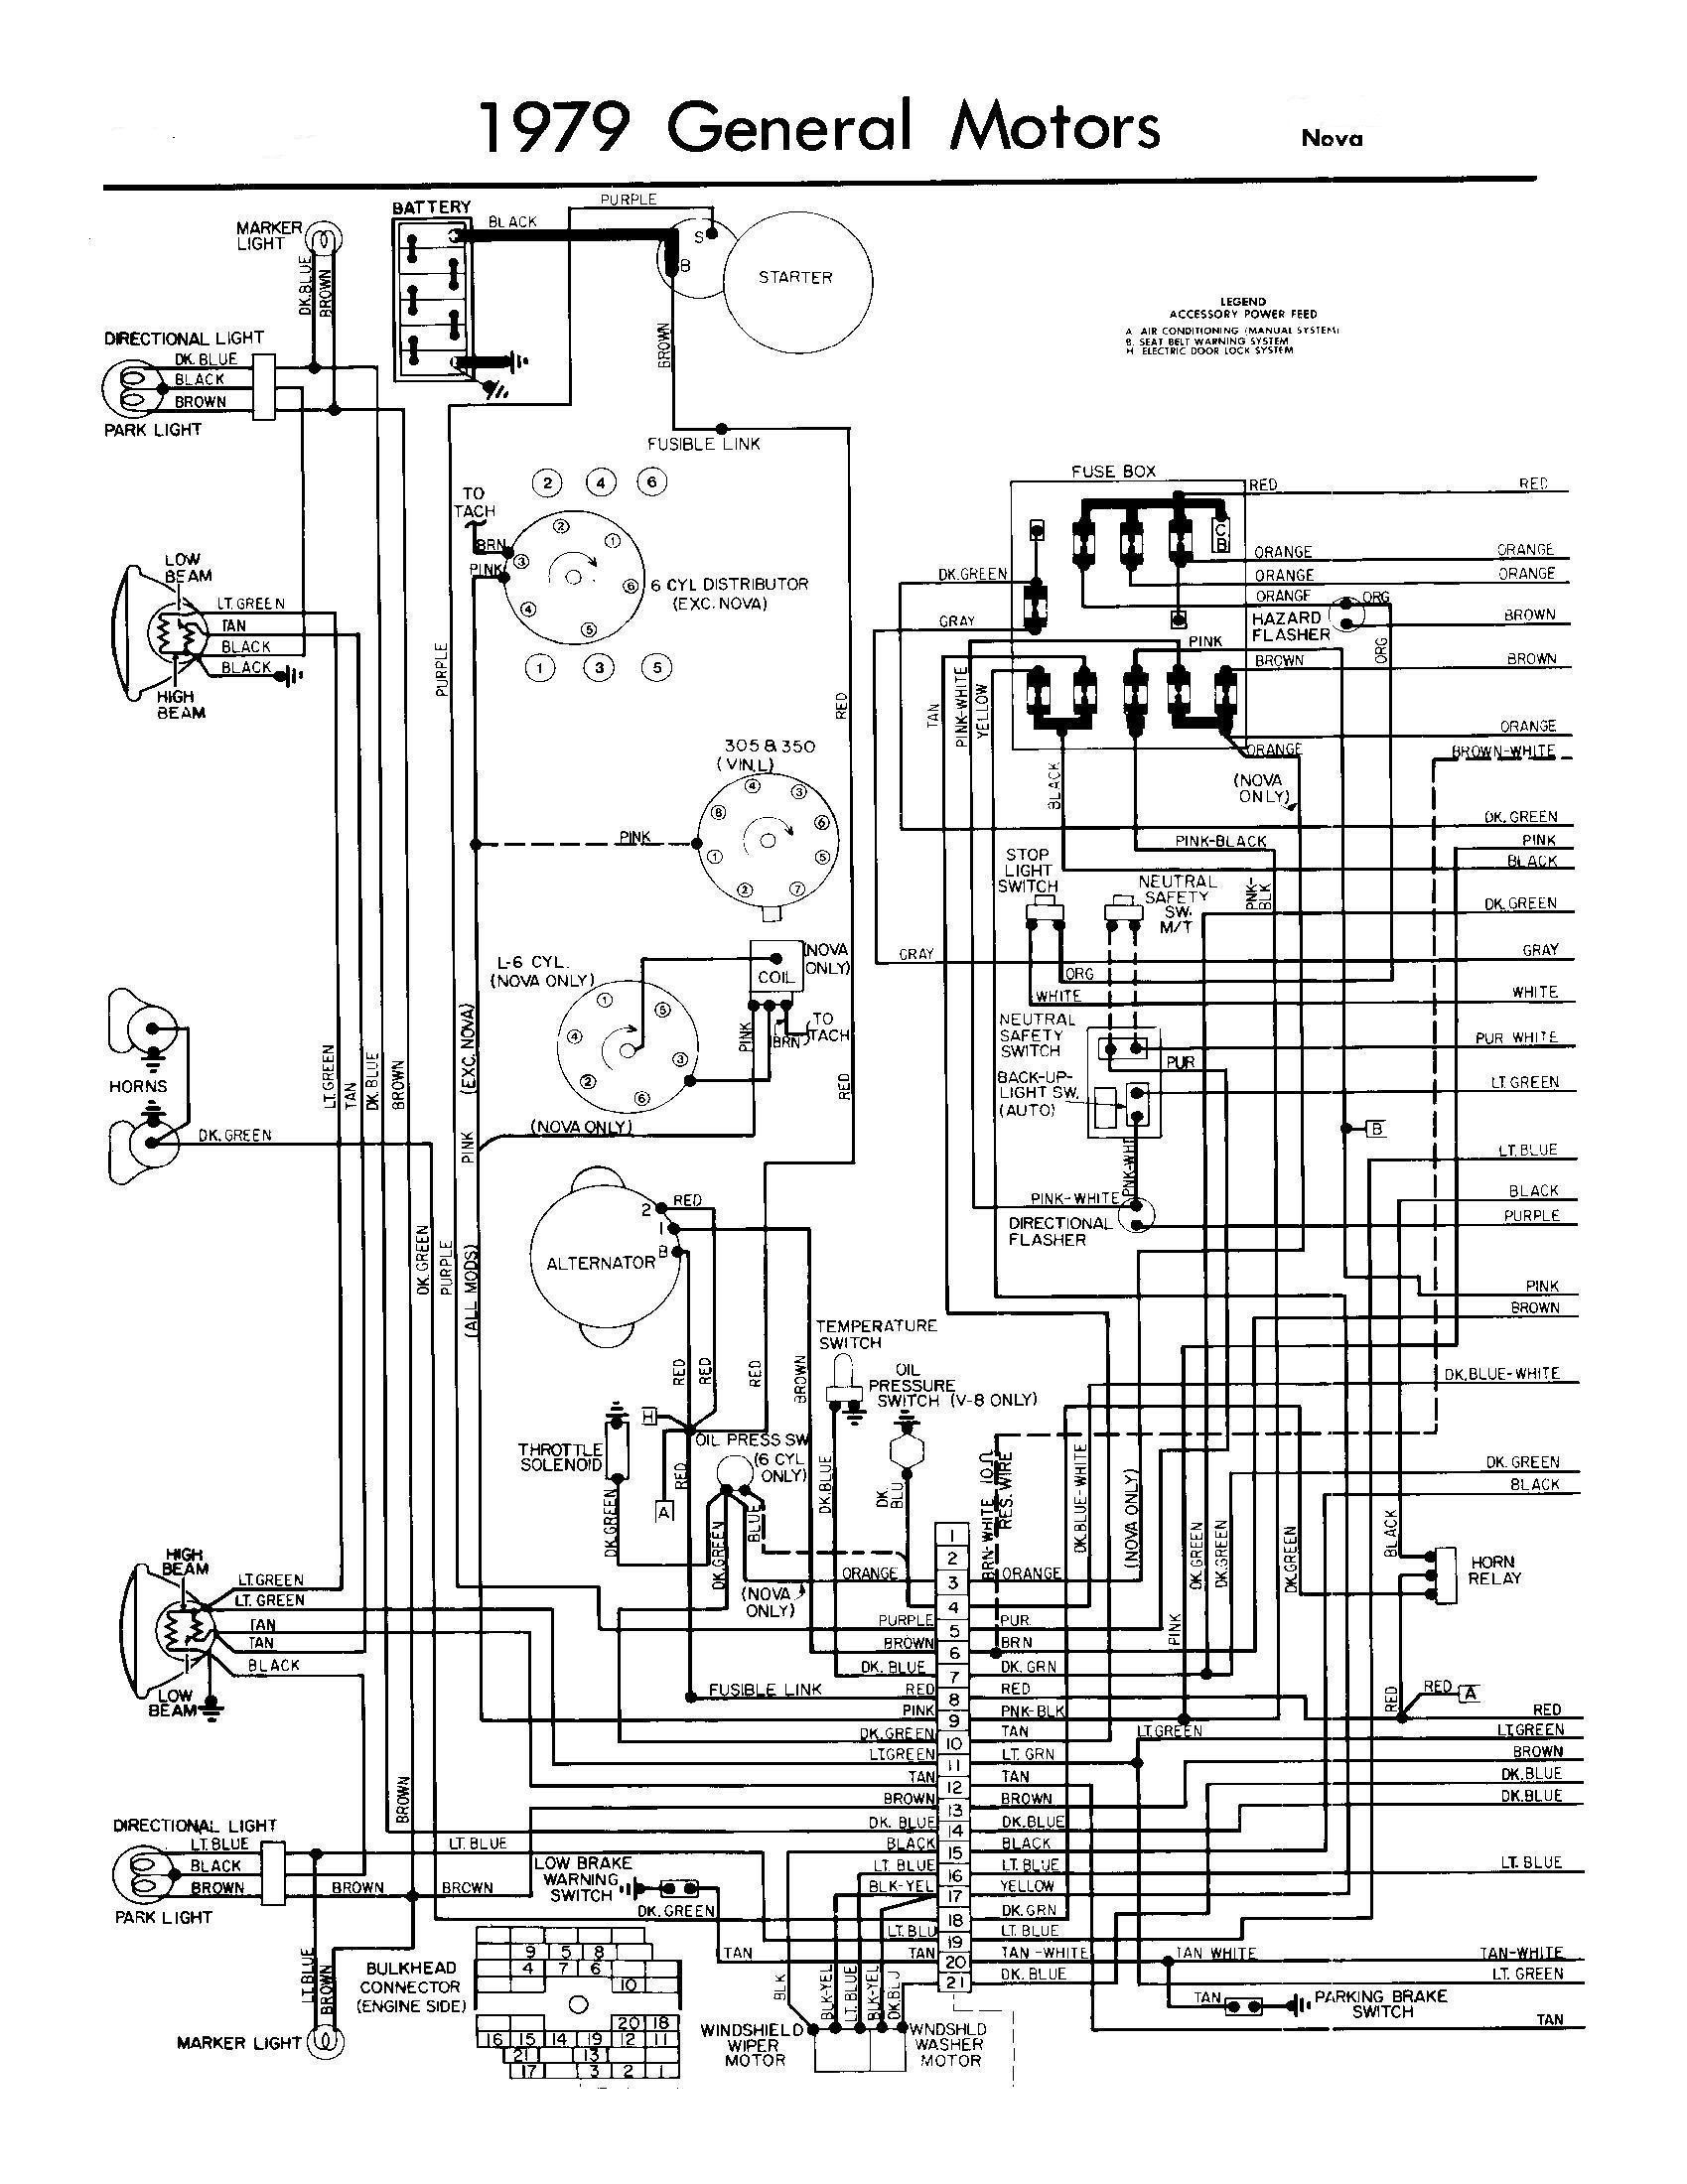 Mack Wiring Harness - Data Wiring Diagram Update on 7 wire hose, 7 wire wiring, 7 wire cable, 7 wire plug, 7 wire motor, 7 wire coil,